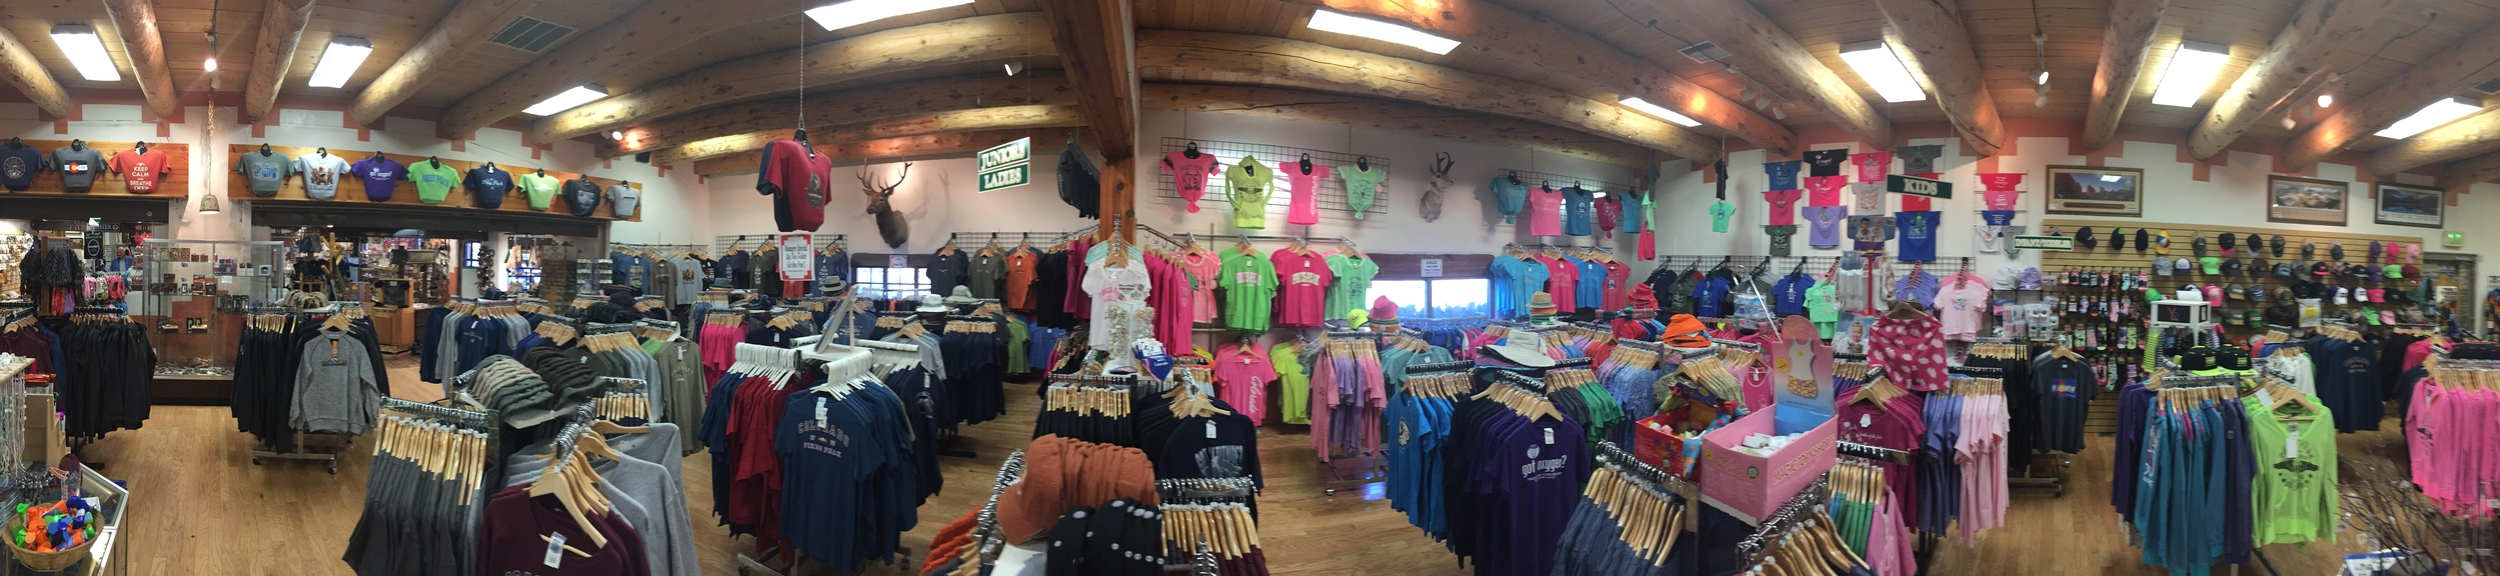 Come explore the largest selection of souvenir shirts in Colorado!